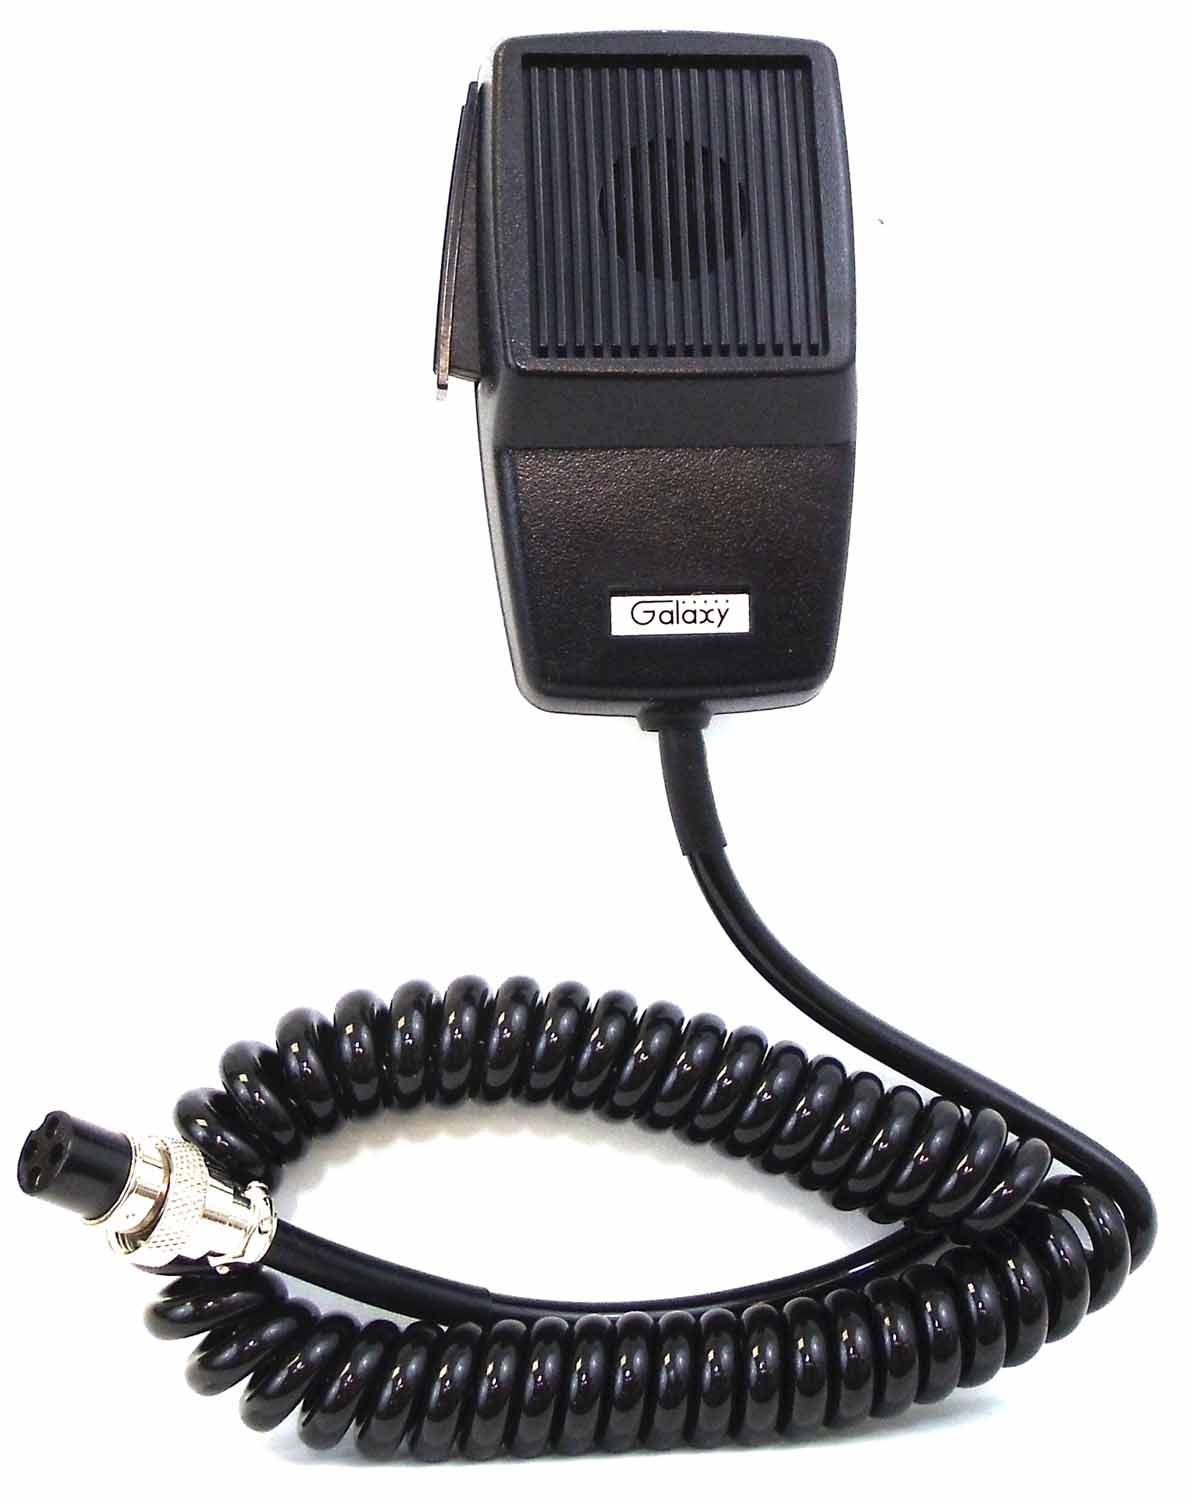 DXMIC - Galaxy Replacement CB Microphone For Galaxy Radios